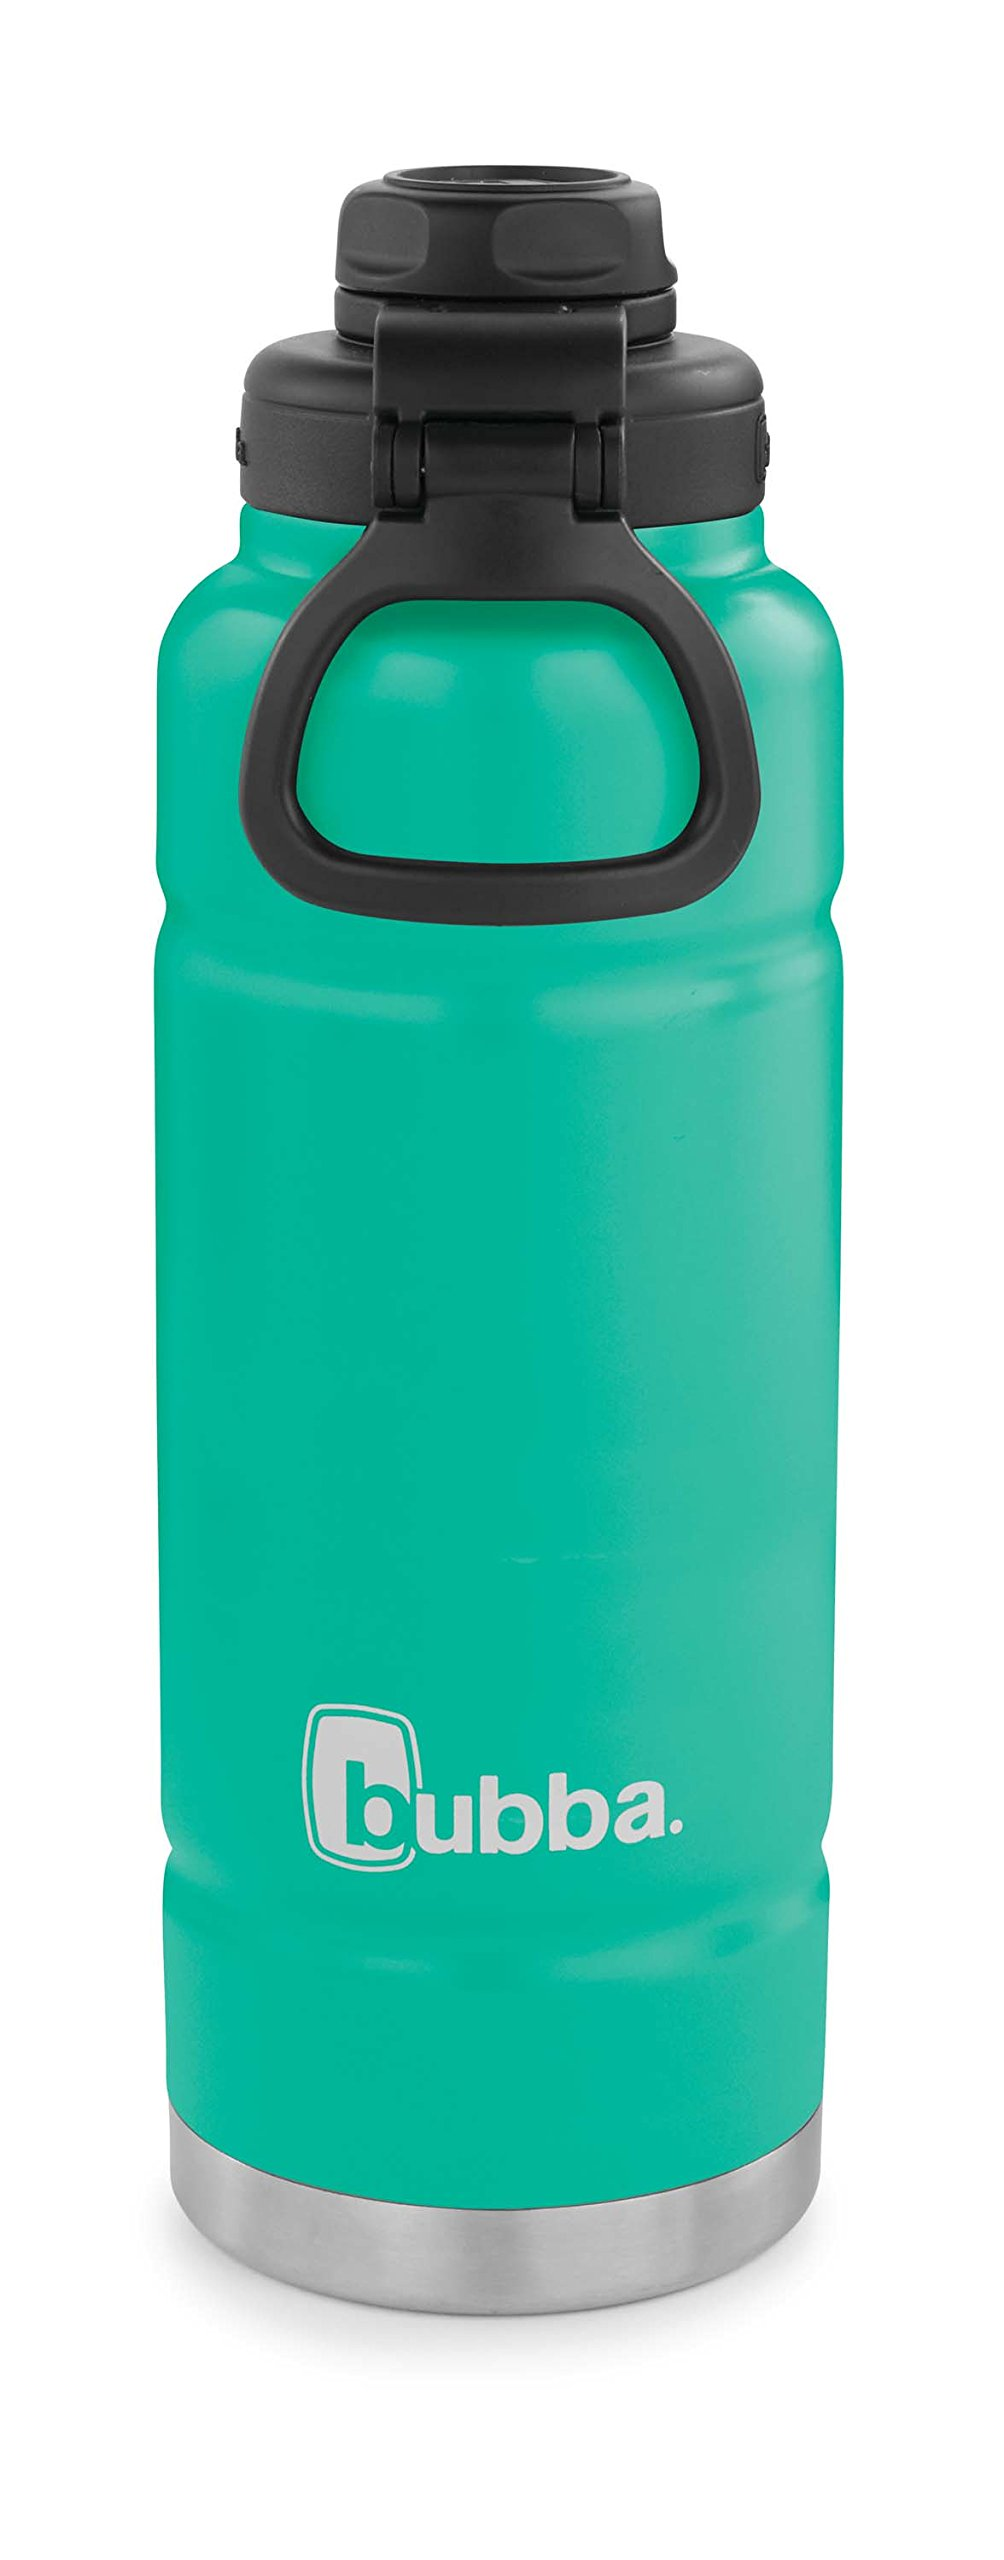 Bubba Trailblazer Vacuum-Insulated Stainless Steel Water Bottle, 40 oz, Rock Candy by bubba (Image #8)